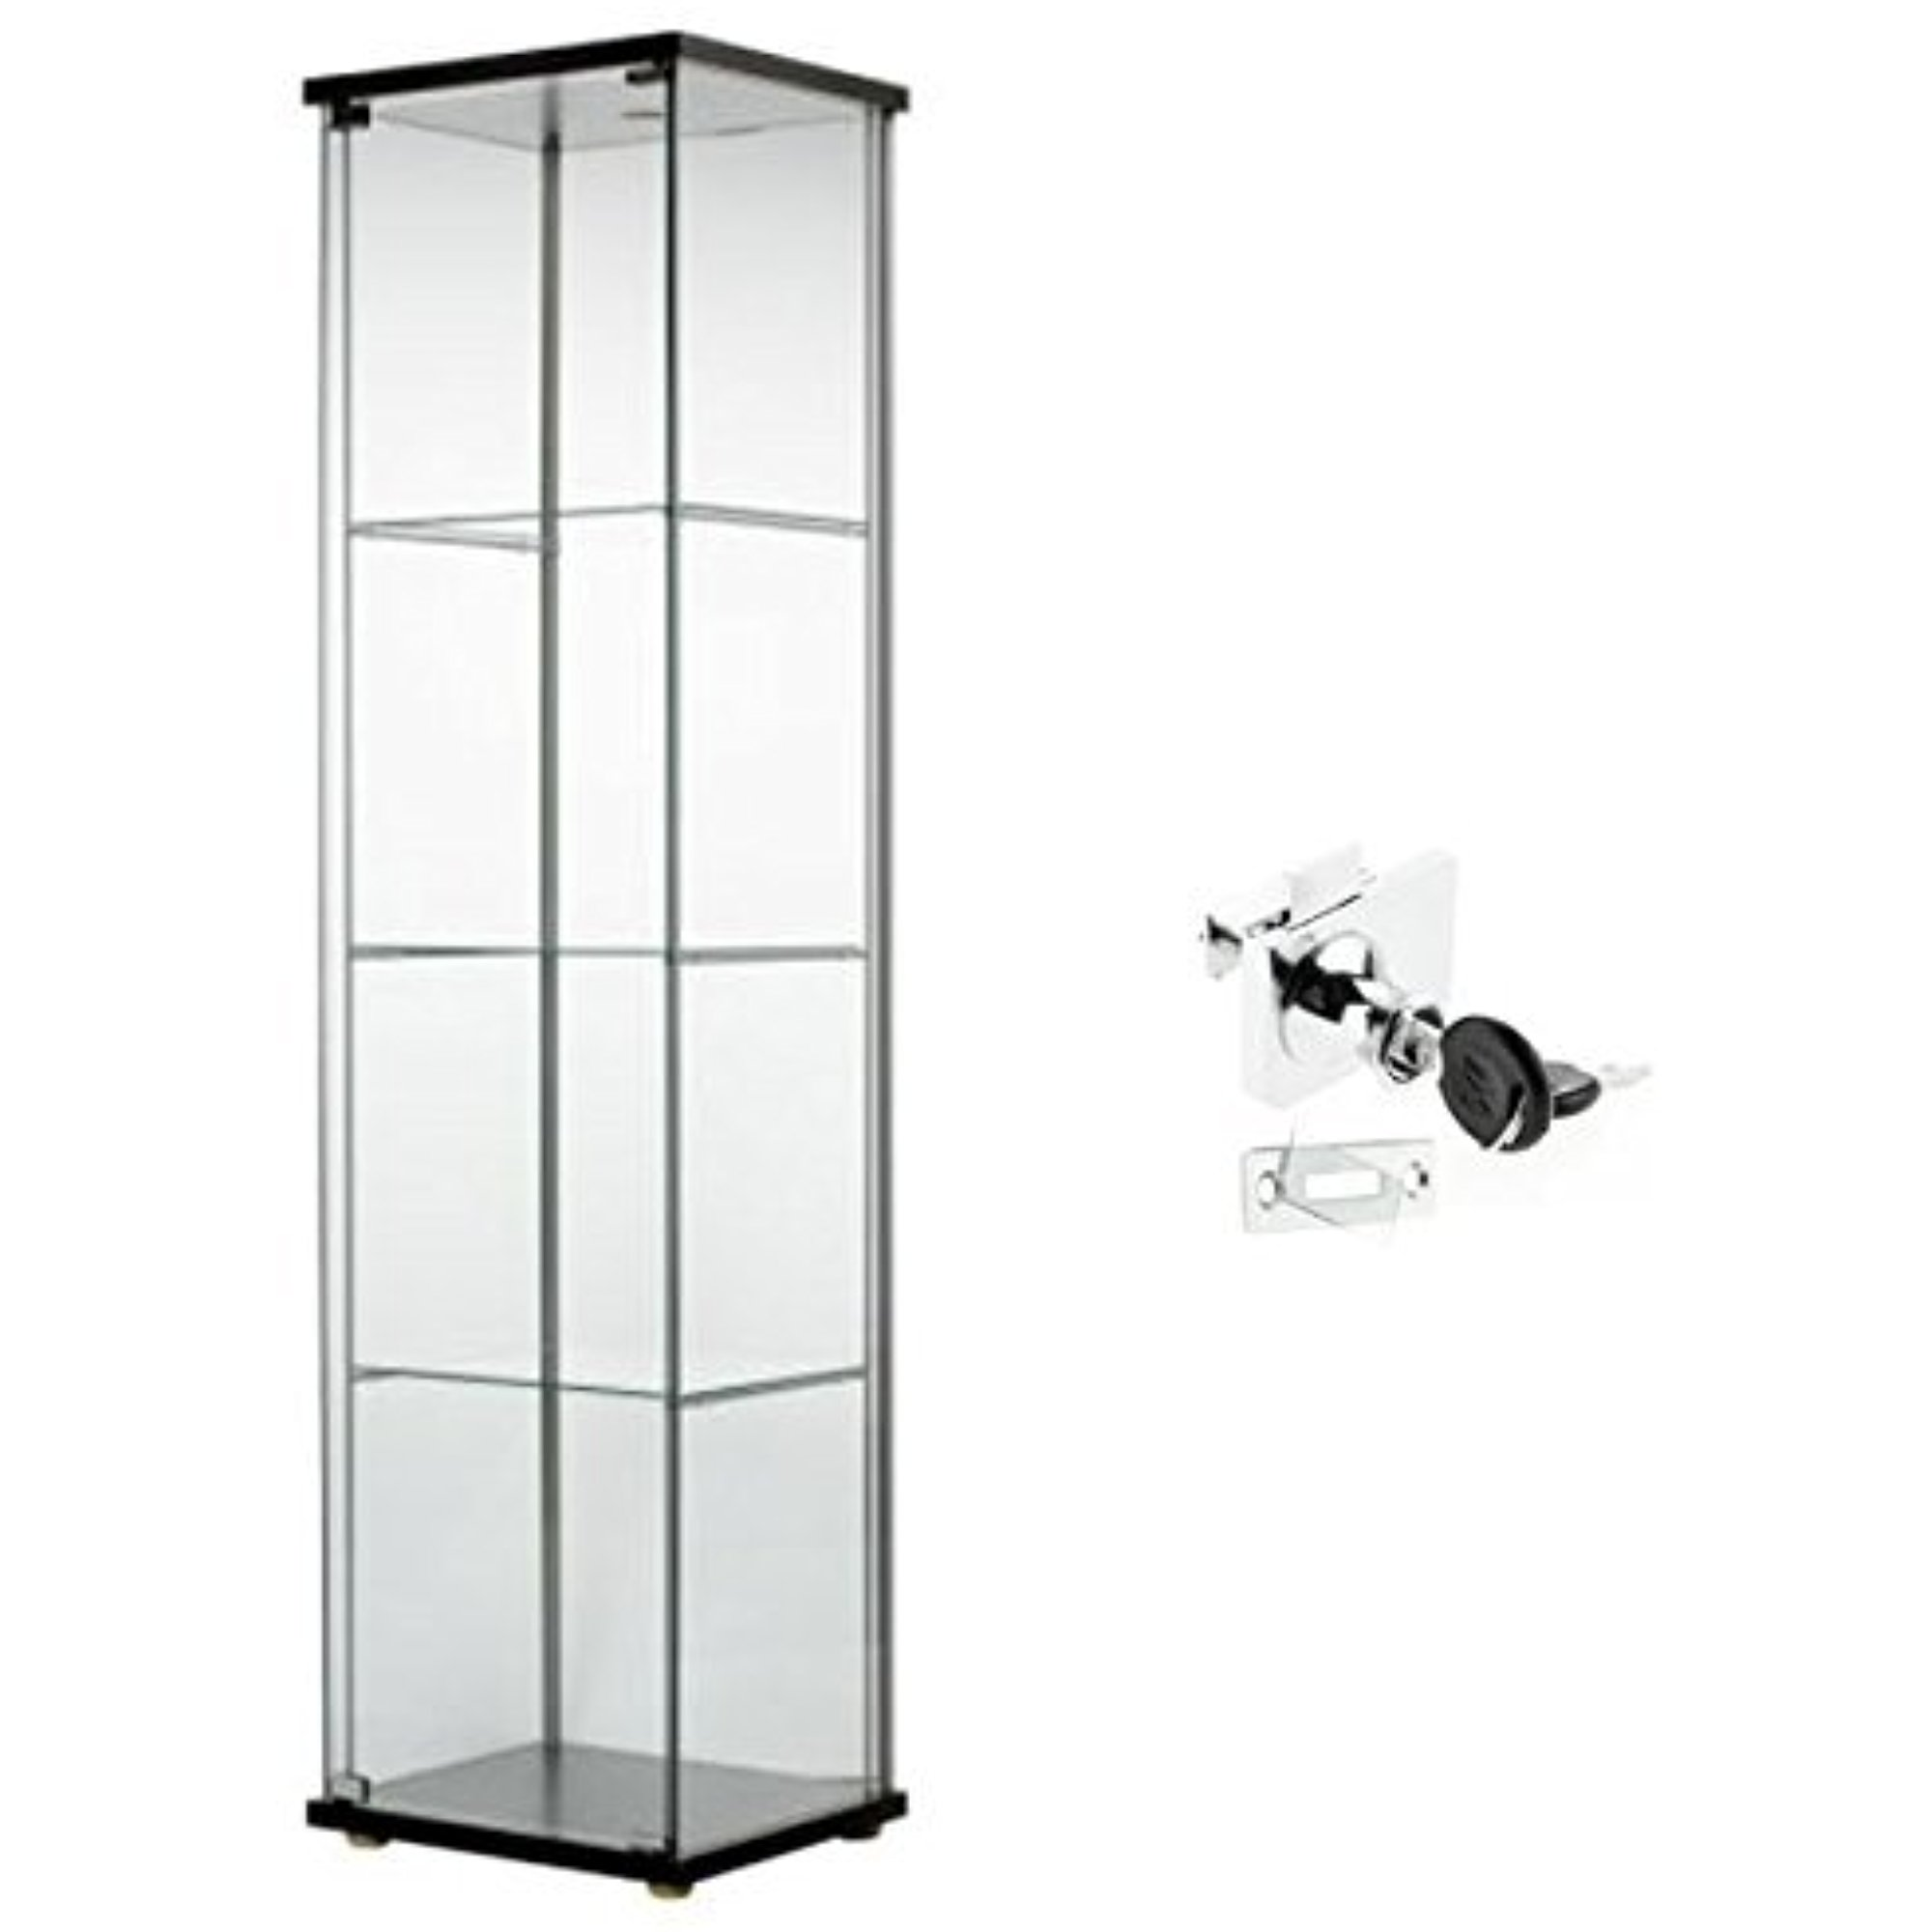 Ikea Detolf Glass Curio Display Cabinet Black Lockable Lock Is